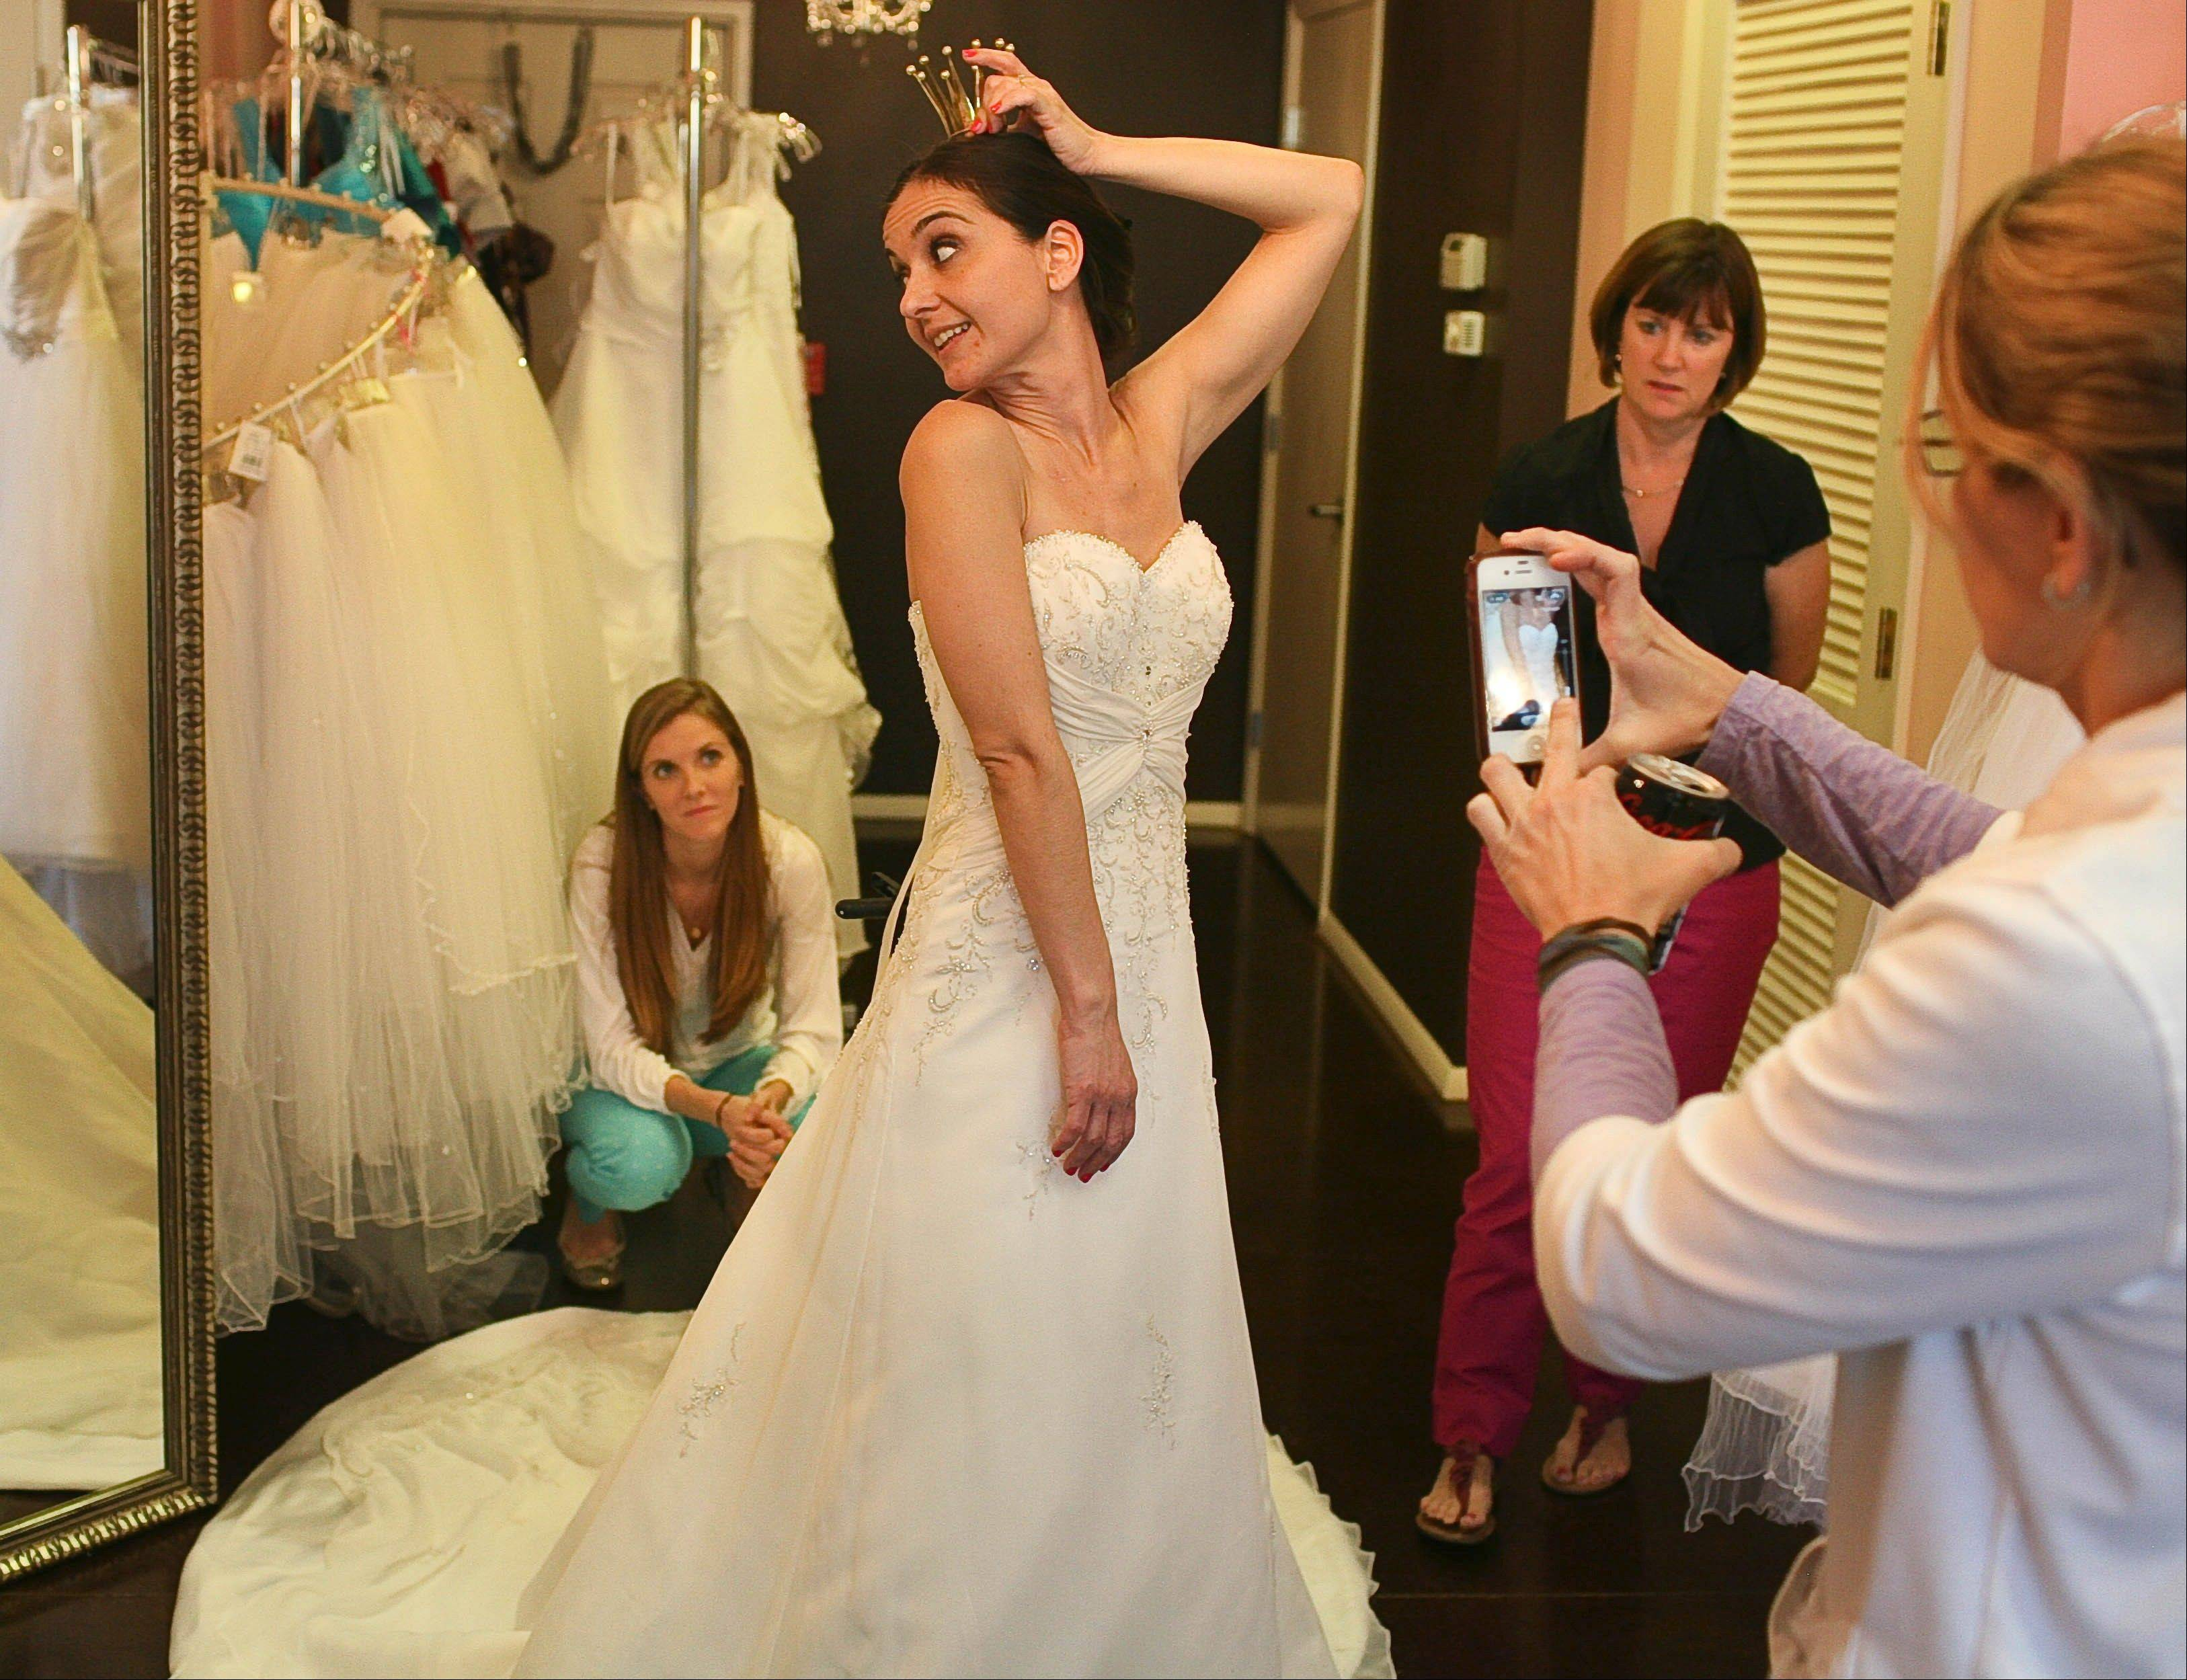 Nikki Rodriguez tries a family heirloom crown on for size as she looks for the perfect wedding dress at Brides Against Breast Cancer in Sarasota, Fla.